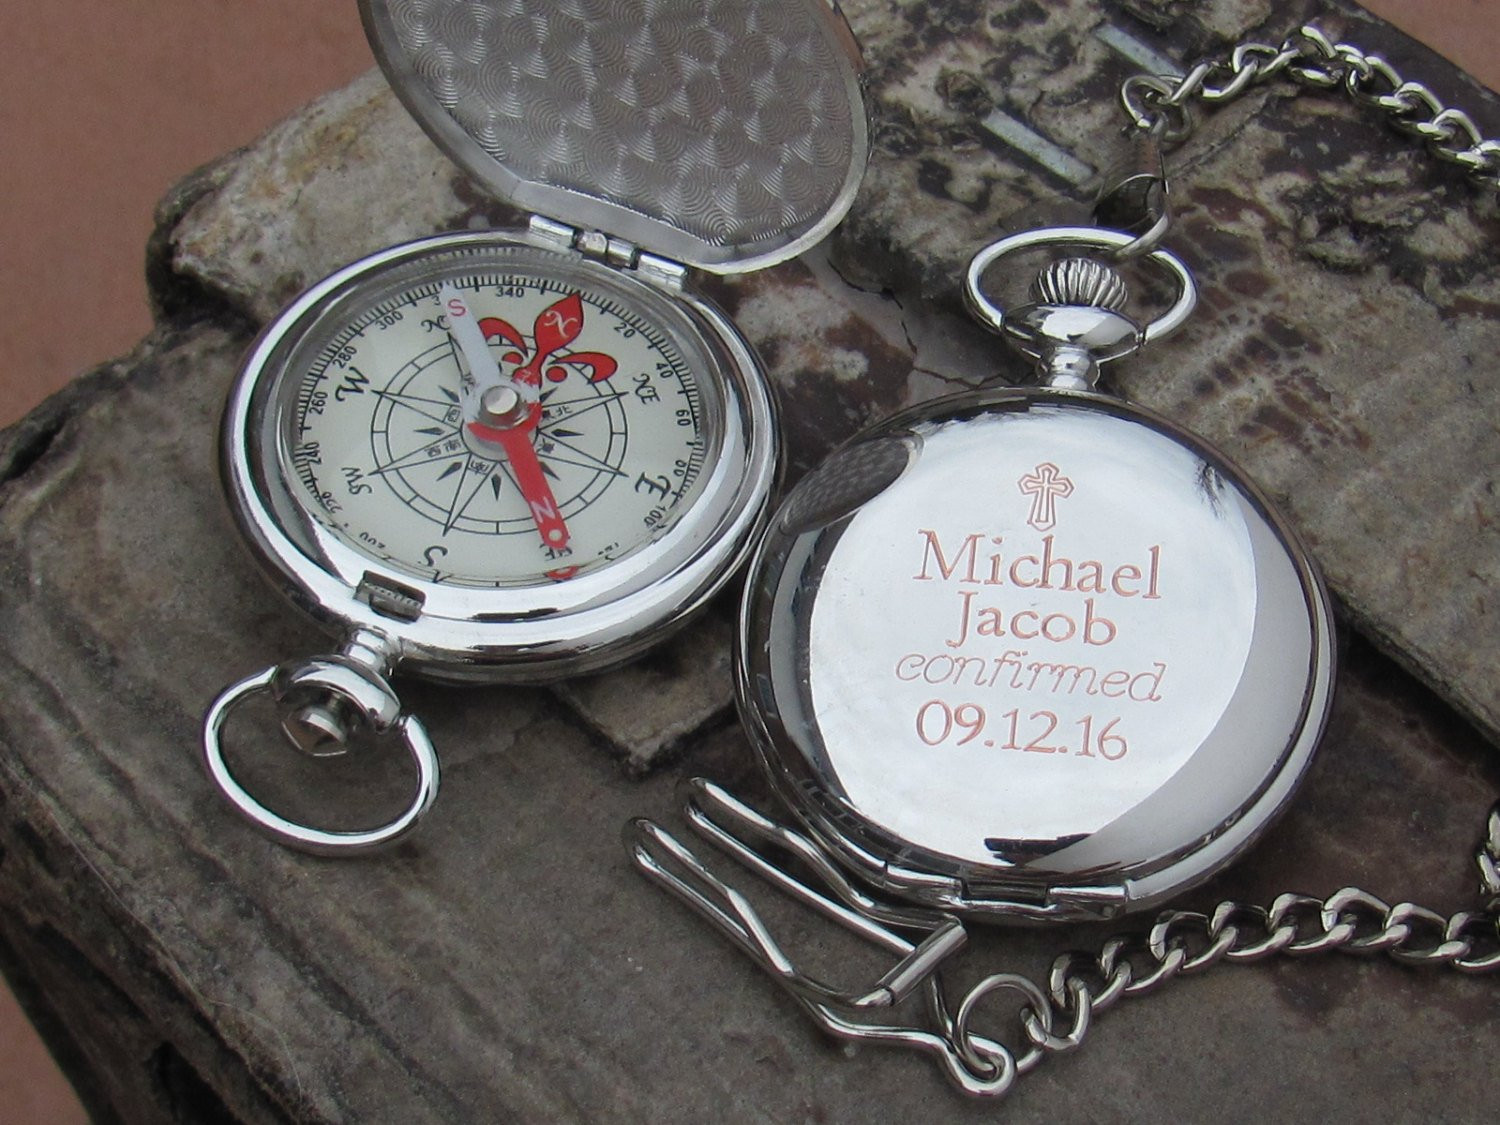 Best ideas about Confirmation Gift Ideas For Boys . Save or Pin Confirmation Gift Engraved Personalized by EngravedGifts1 Now.